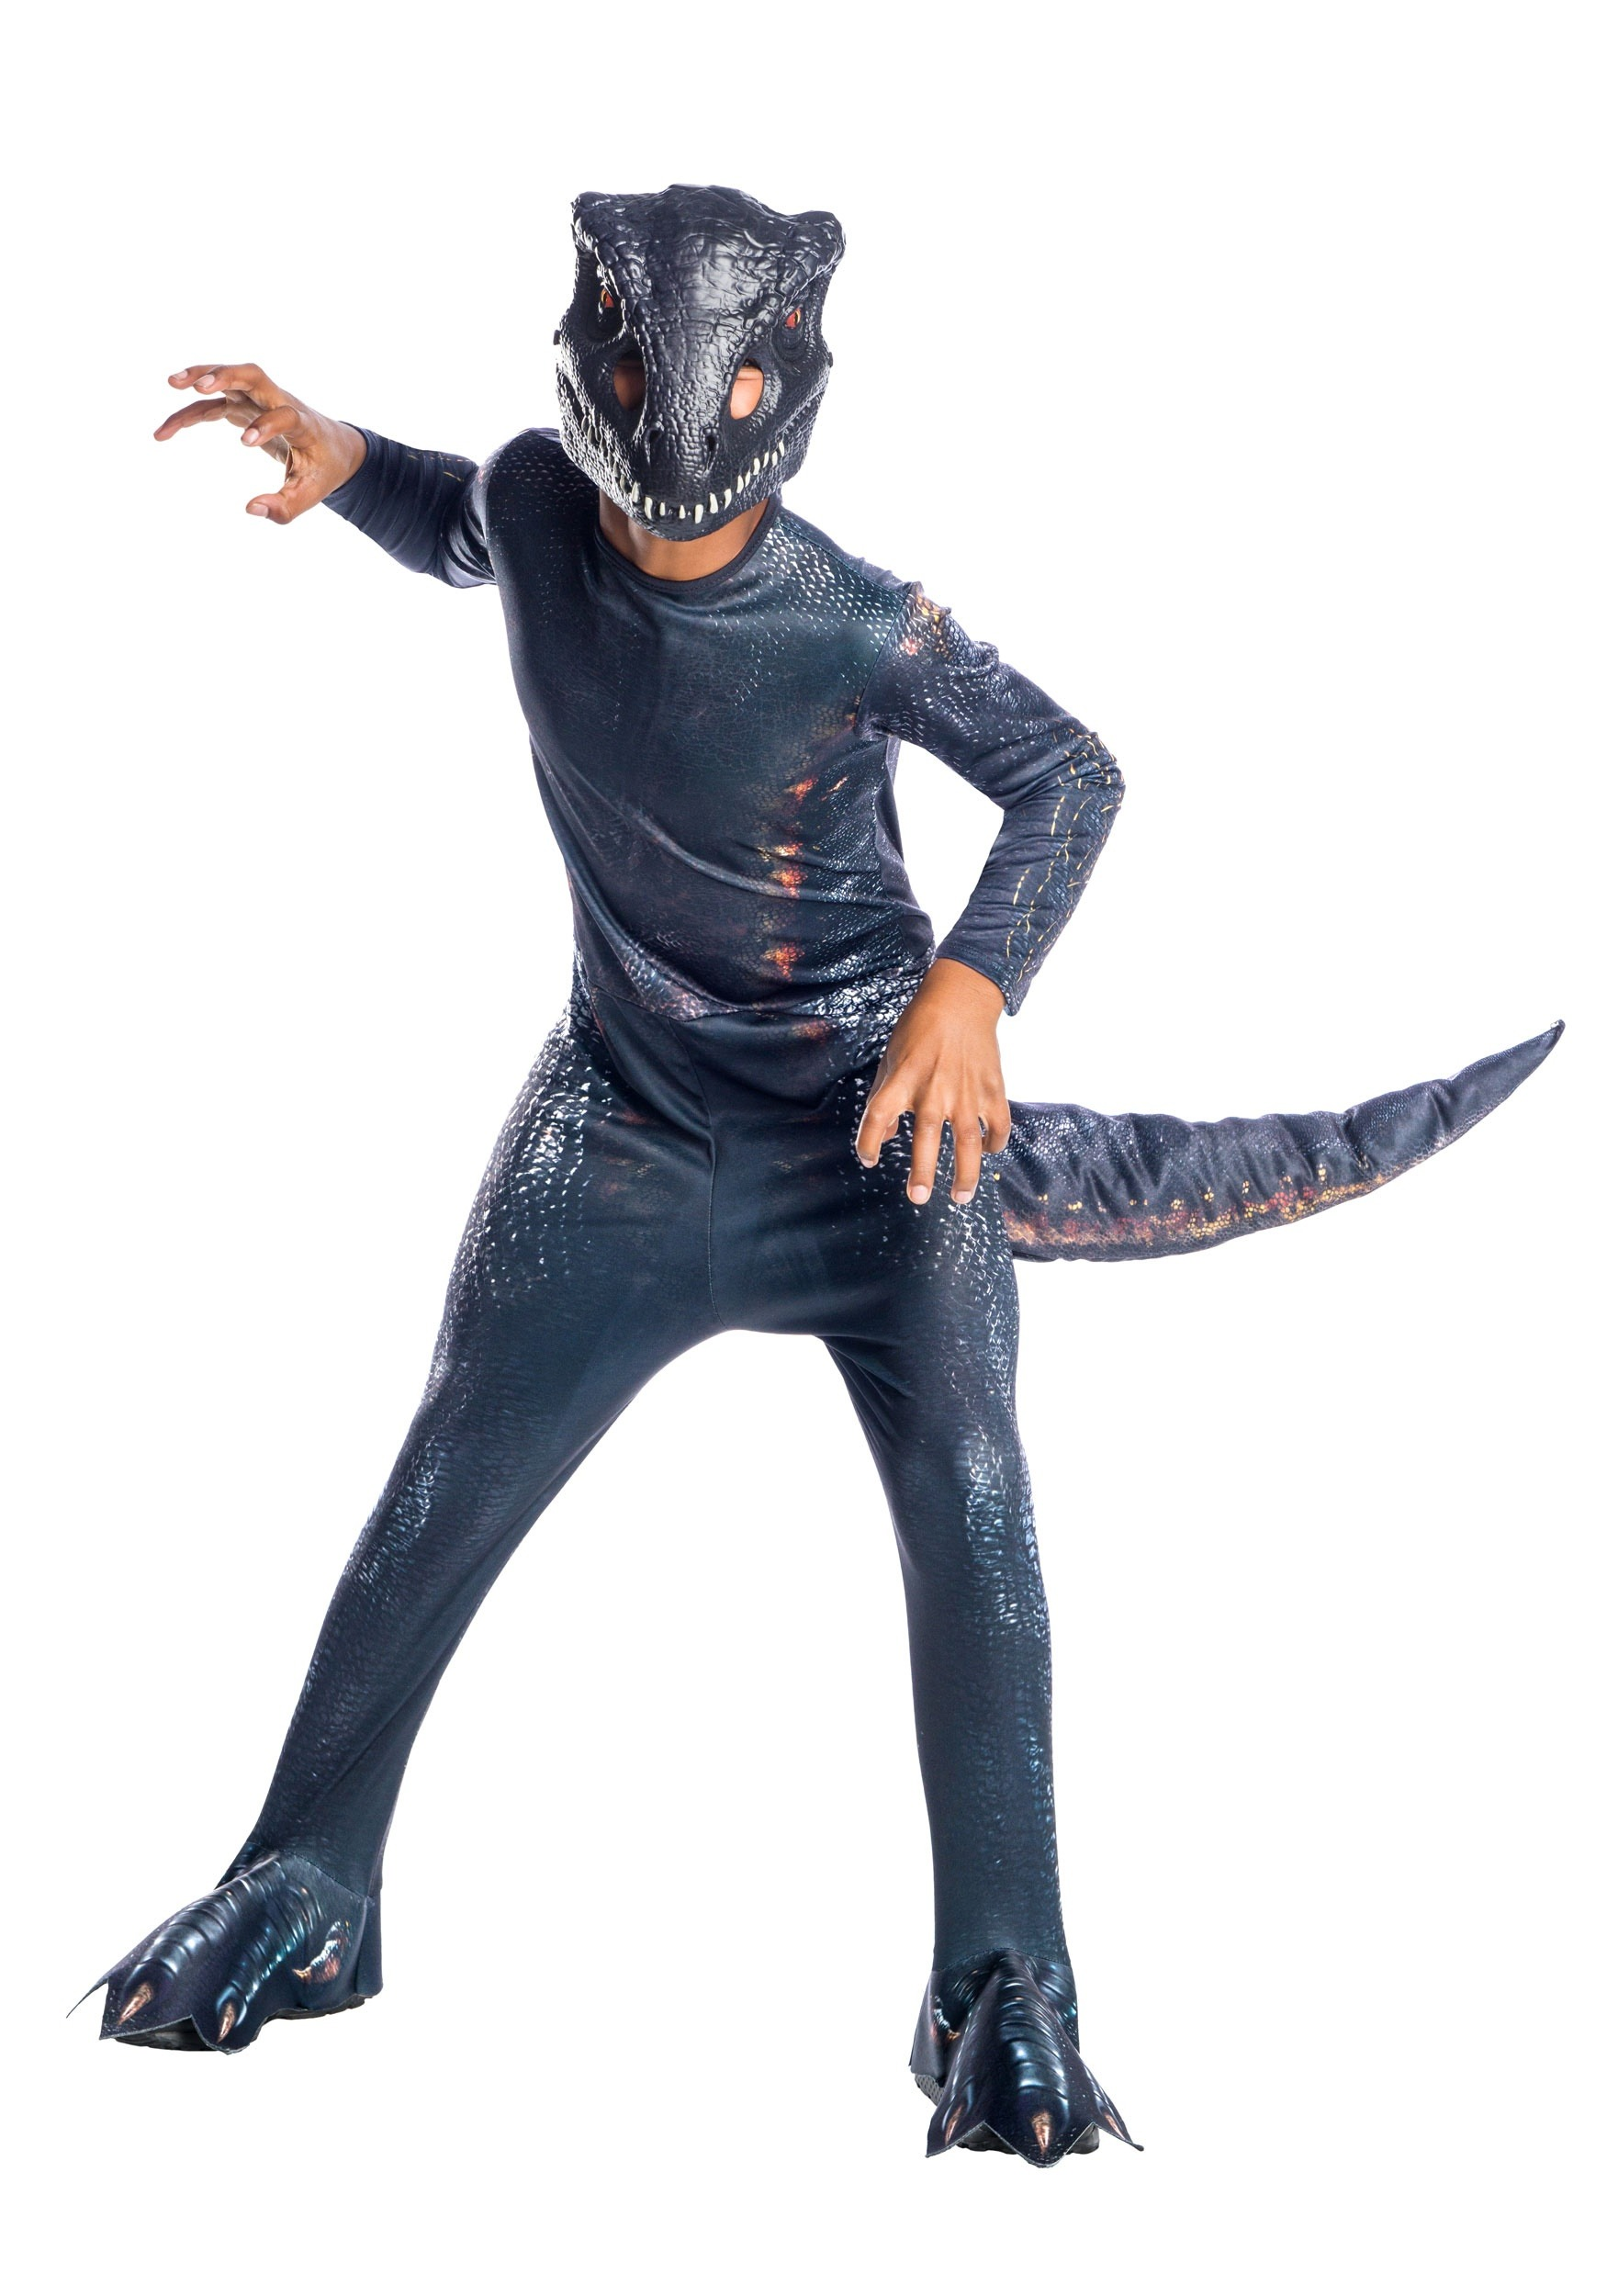 Jurassic World Fallen Kingdom Indoraptor Dinosaur Costume